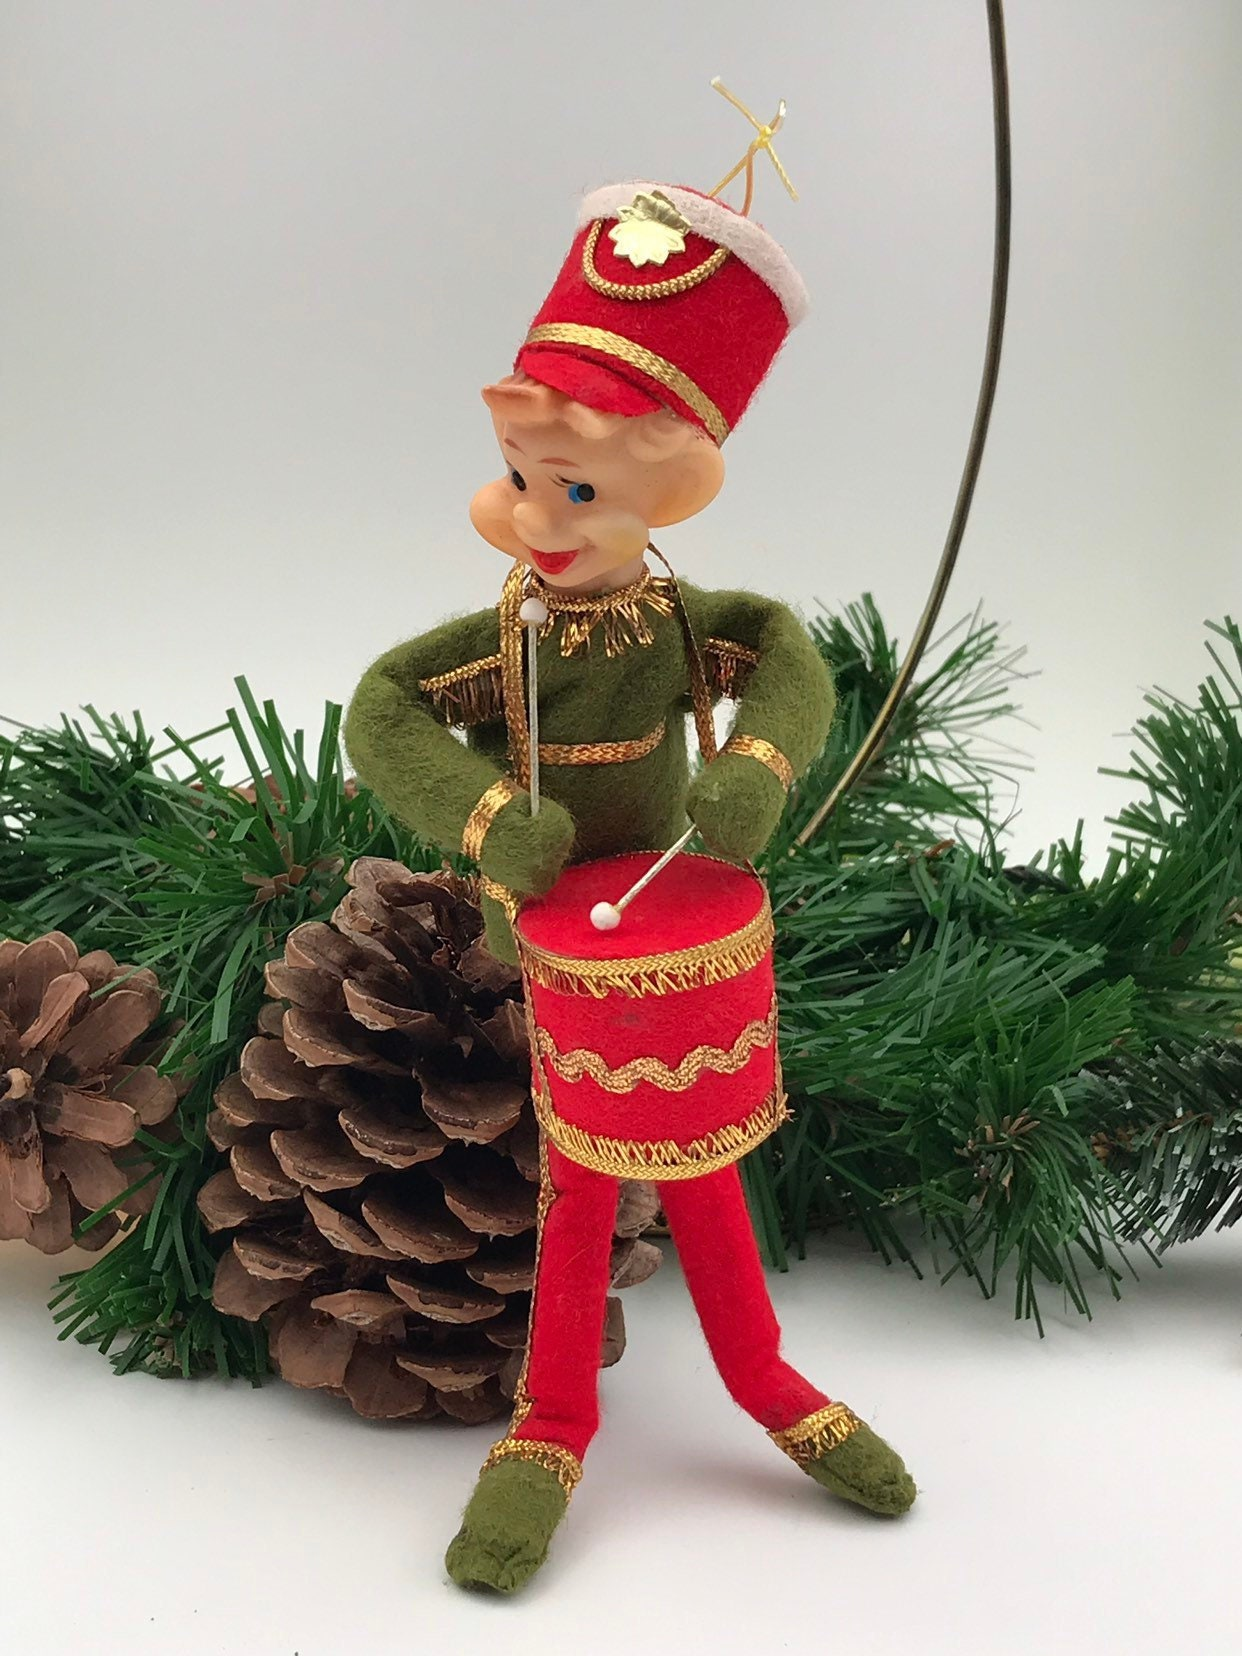 Christmas Drum Decor.Vintage Pixie Elf With Drum Ornament Christmas Elf Drum